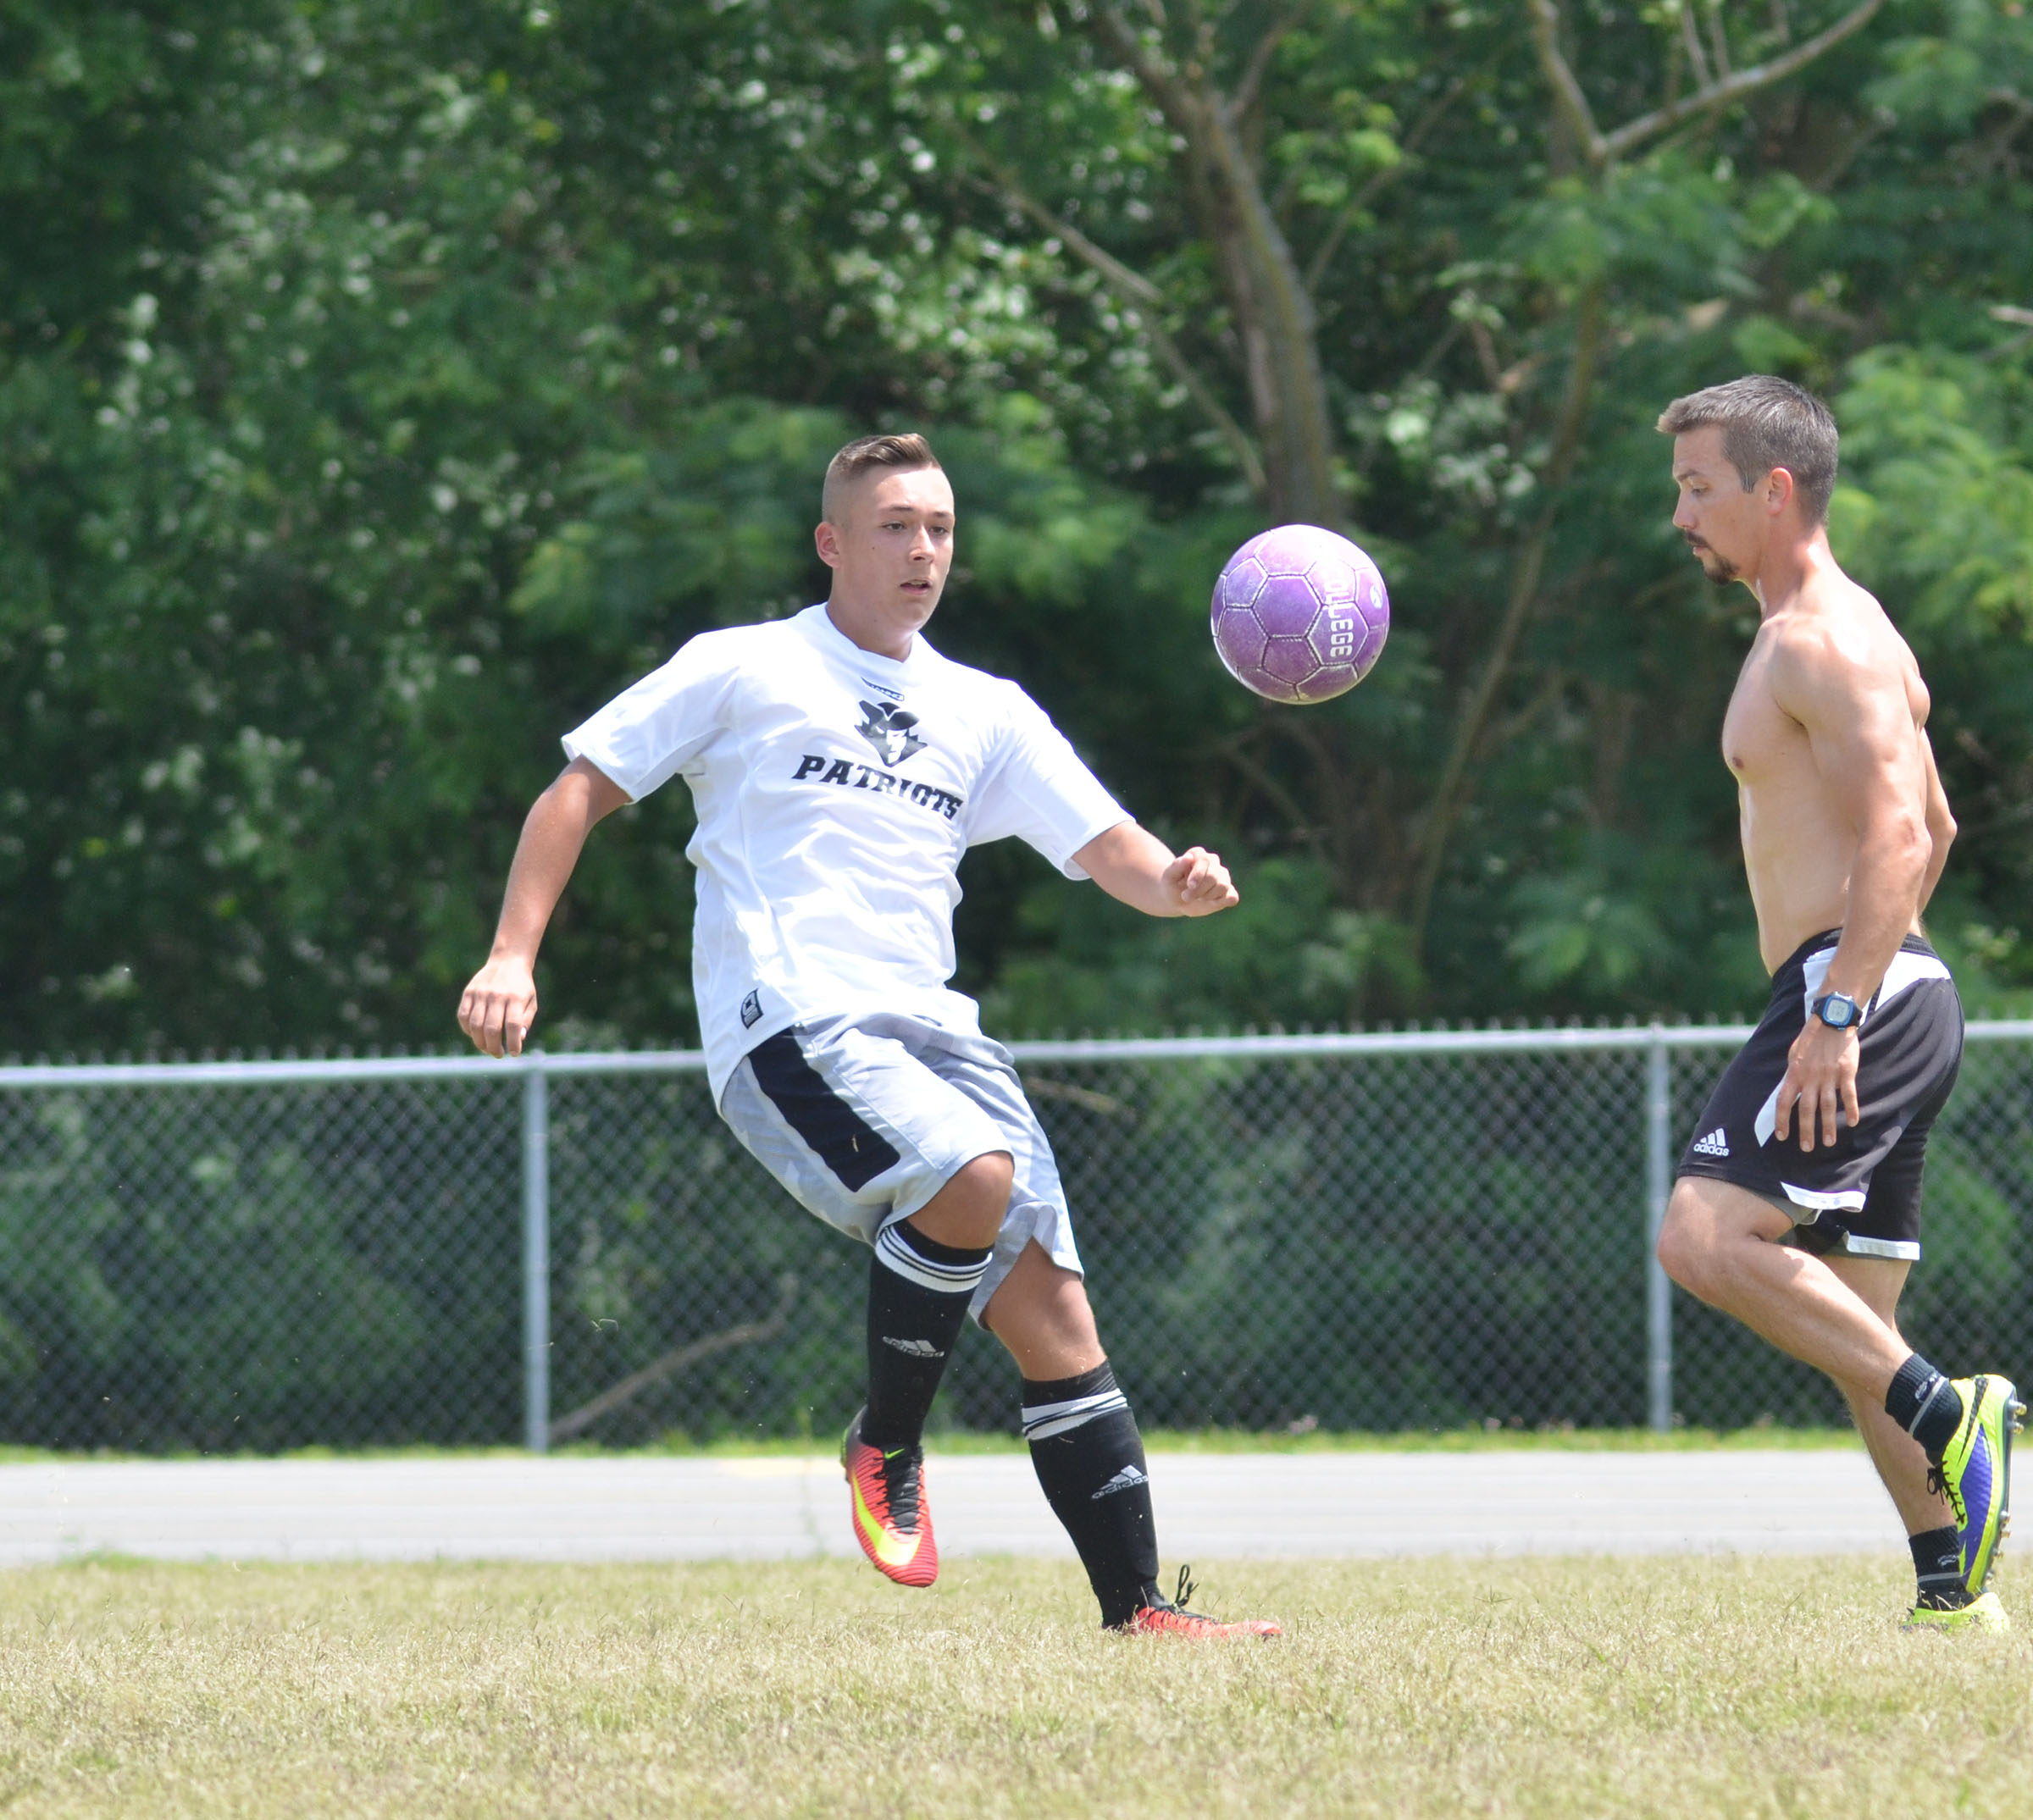 CHS senior Cody Davis, at left, kicks the ball as alumni player Drew Skaggs attempts to steal it.